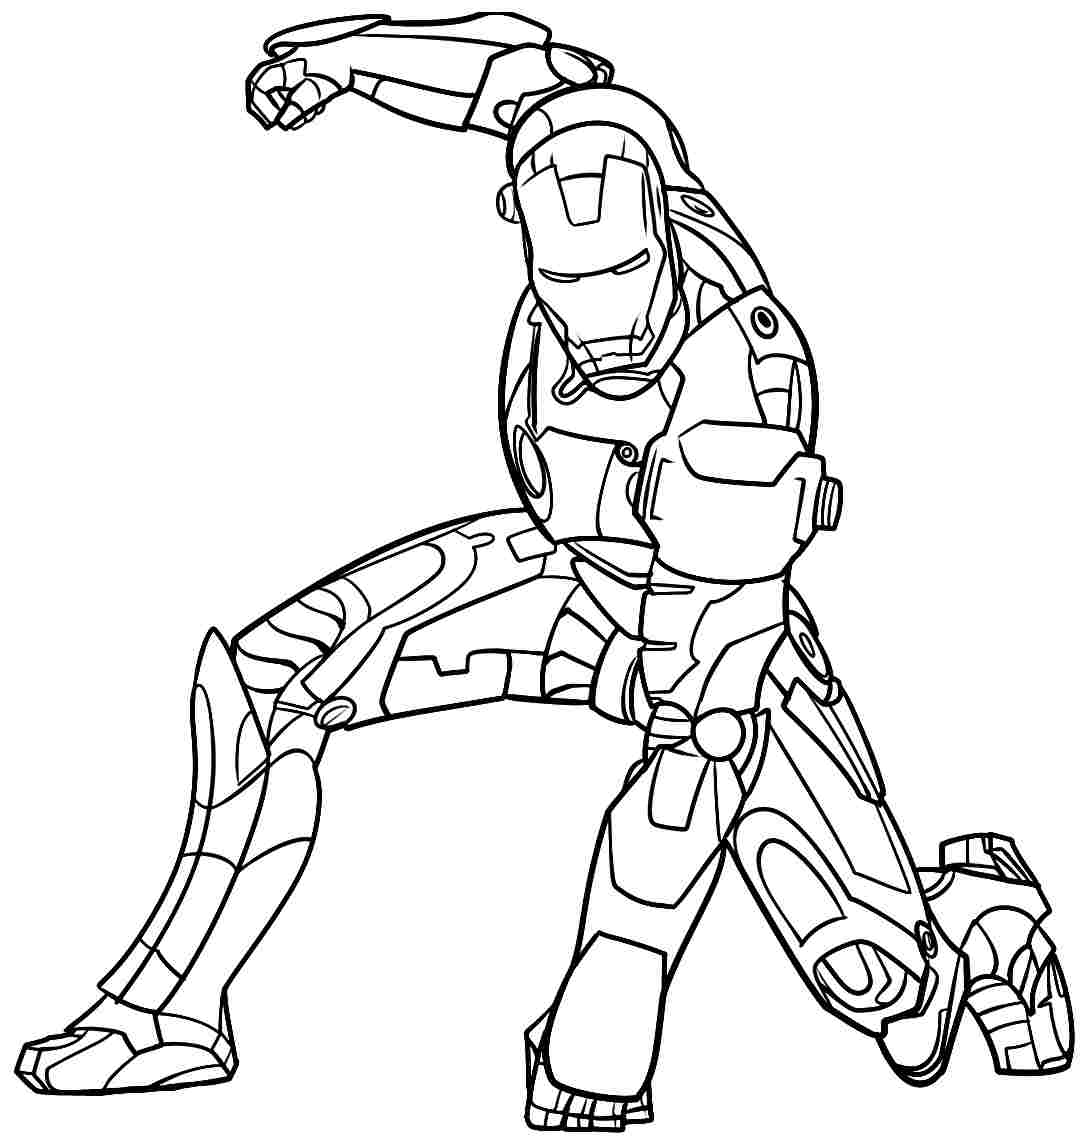 coloring pages iron man iron man superheroes printable coloring pages pages iron man coloring